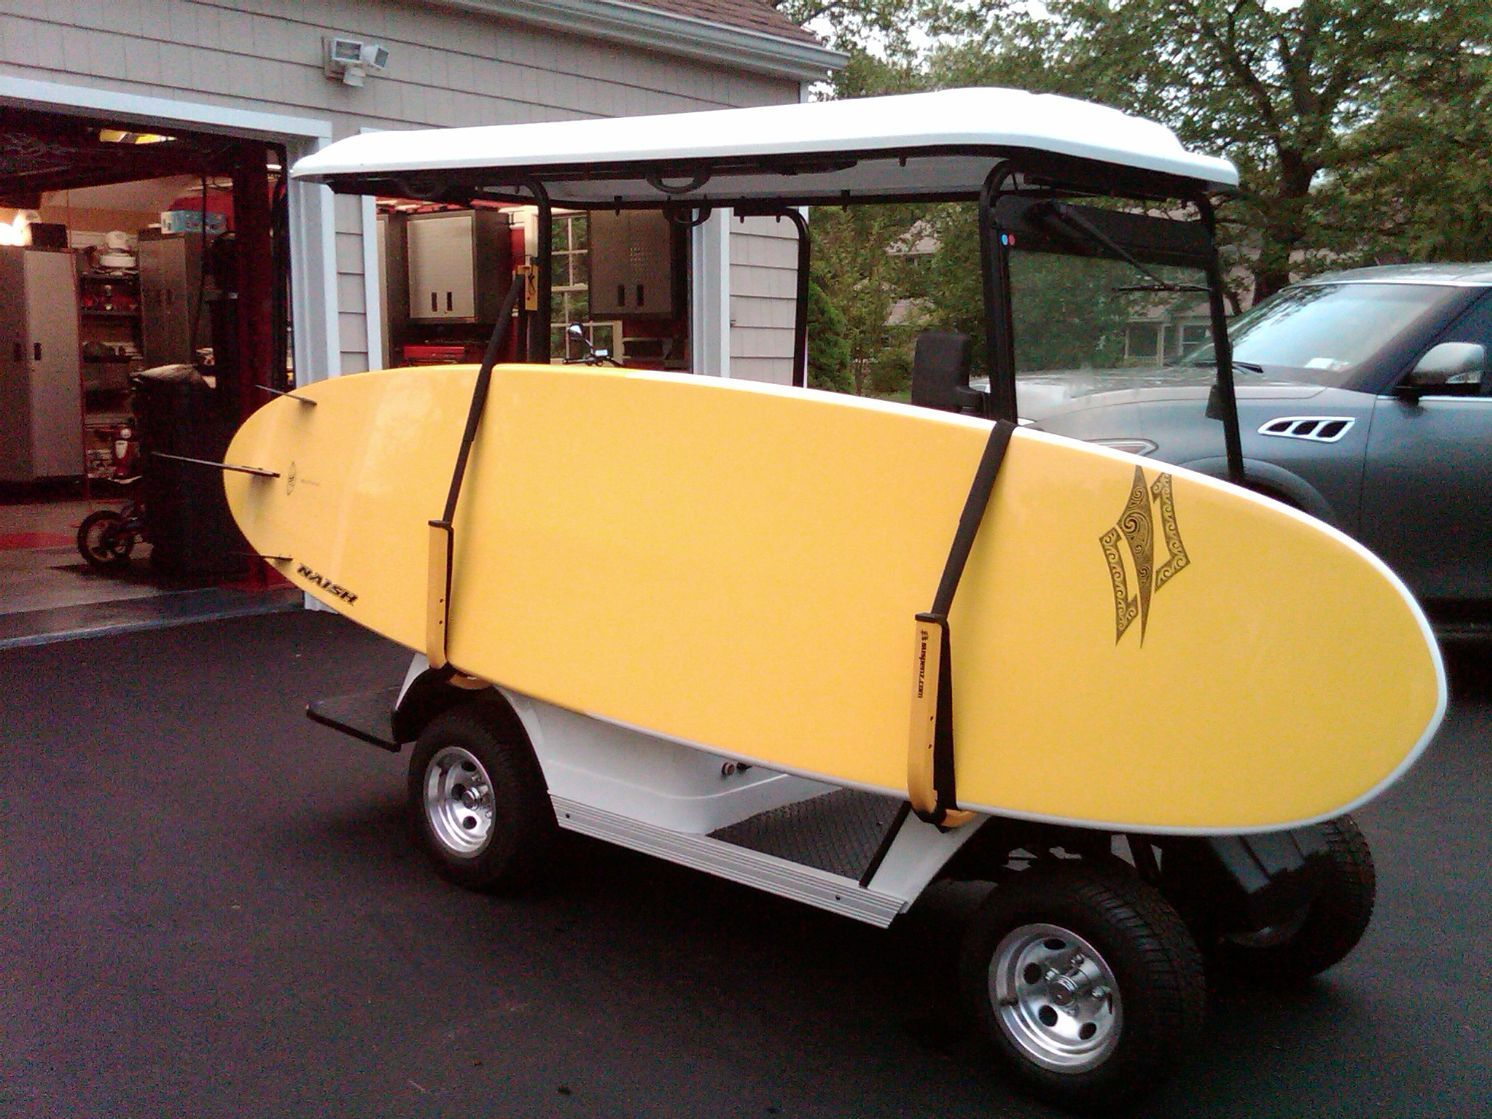 Transport your sup on your golf cart using this rack